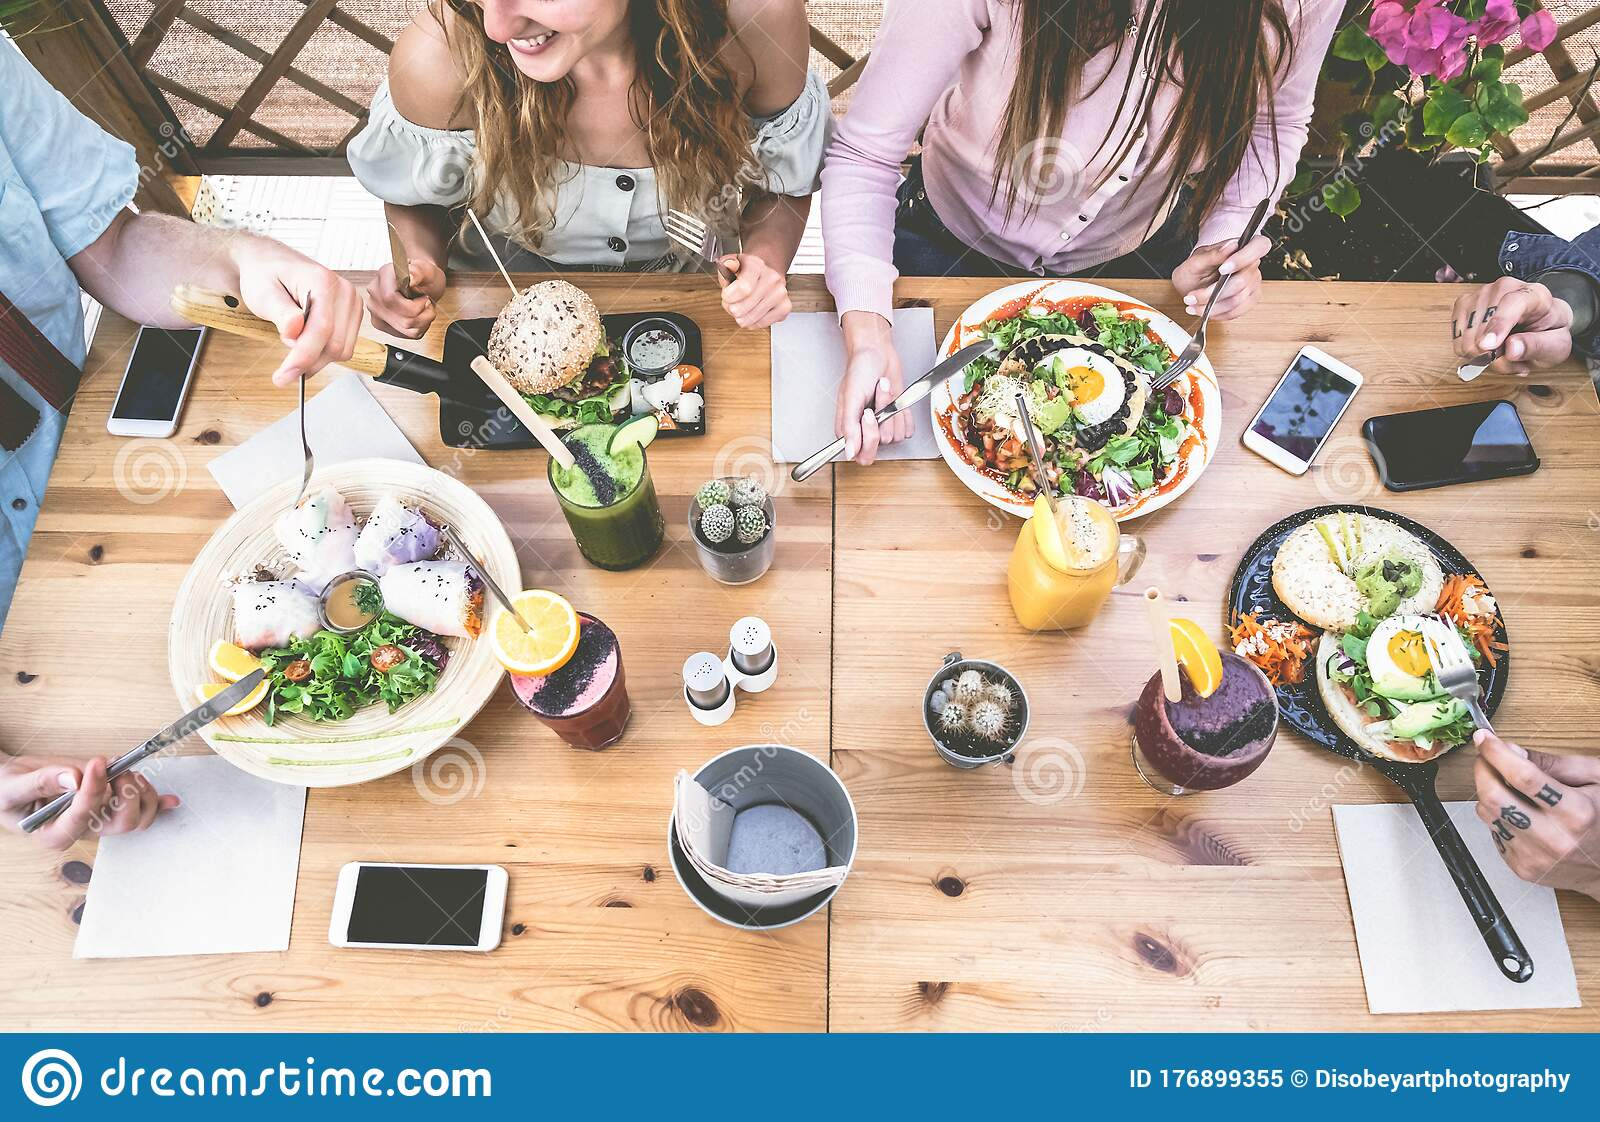 Young People Eating Brunch And Drinking Smoothie Bowl At Vintage Bar Happy People Having A Healthy Lunch And Chatting In Trendy Stock Image Image Of Friends Drink 176899355